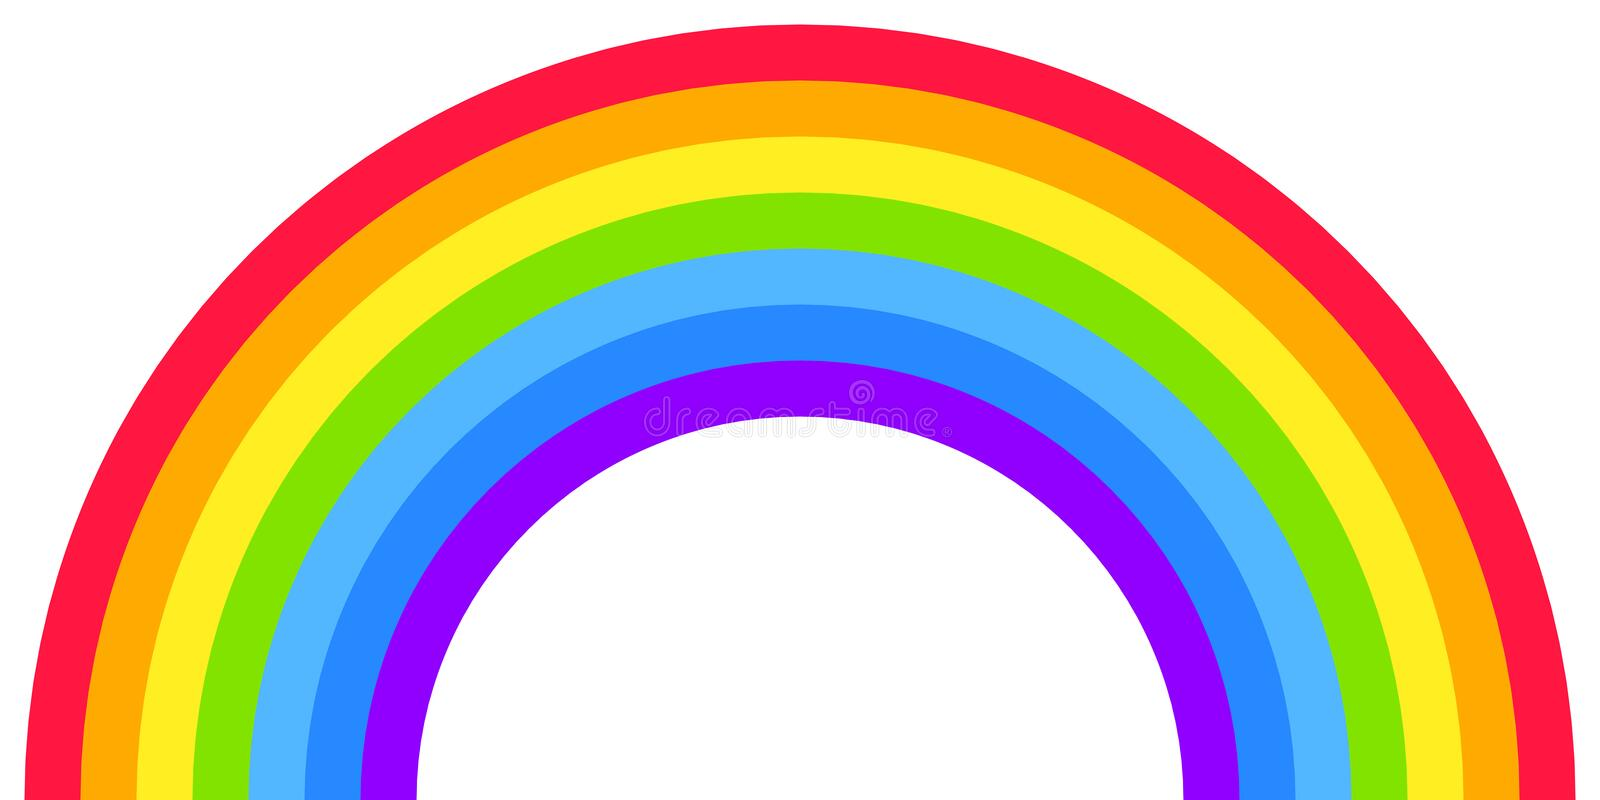 Rainbow arc shape, half circle, bright spectrum colors, colorful striped pattern. Vector illustration. Rainbow icon royalty free illustration